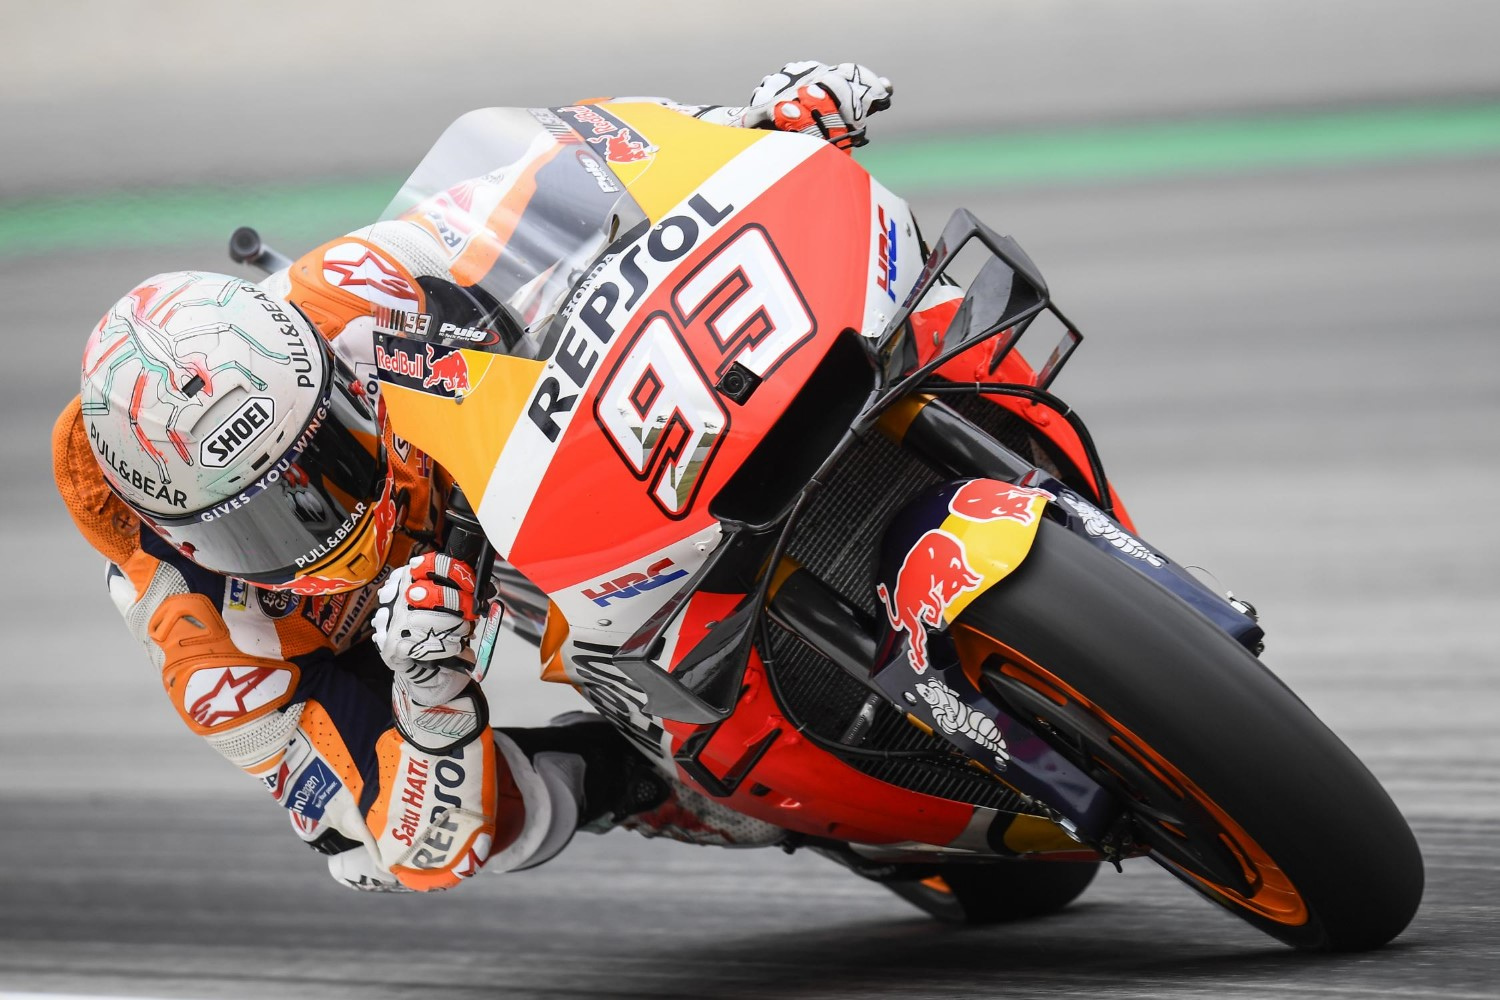 Marquez tested 2 different bikes